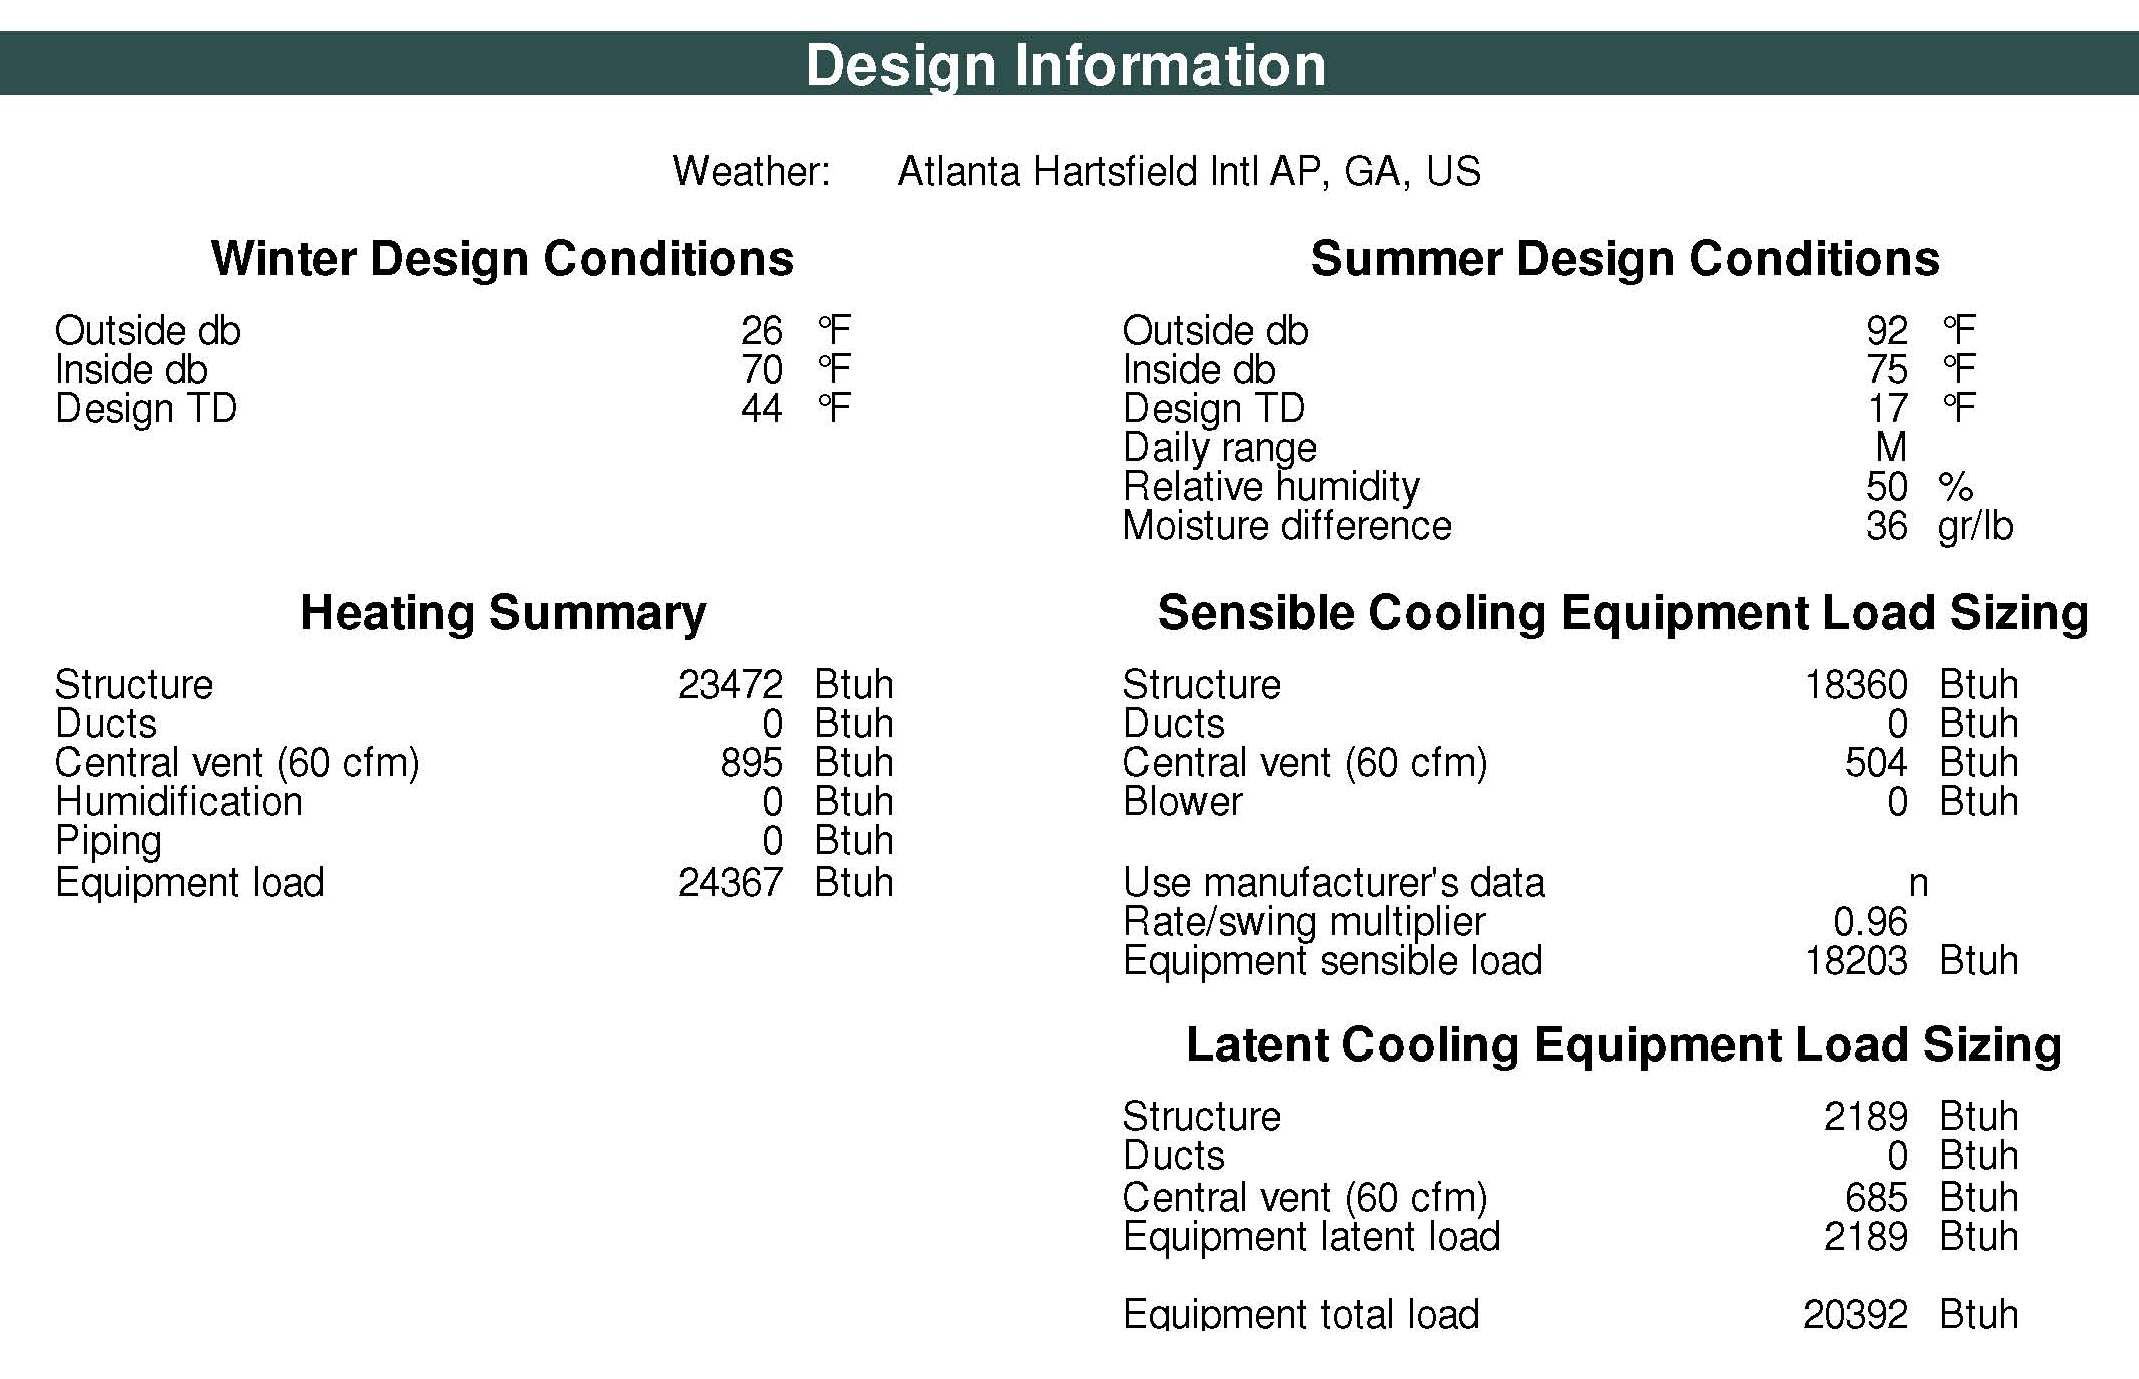 Worksheets Manual J Cooling Load Calculation Worksheet air conditioner manual j calculation grihon com ac coolers 2139 home starts at schematic design serenbe load 2f5156 1379